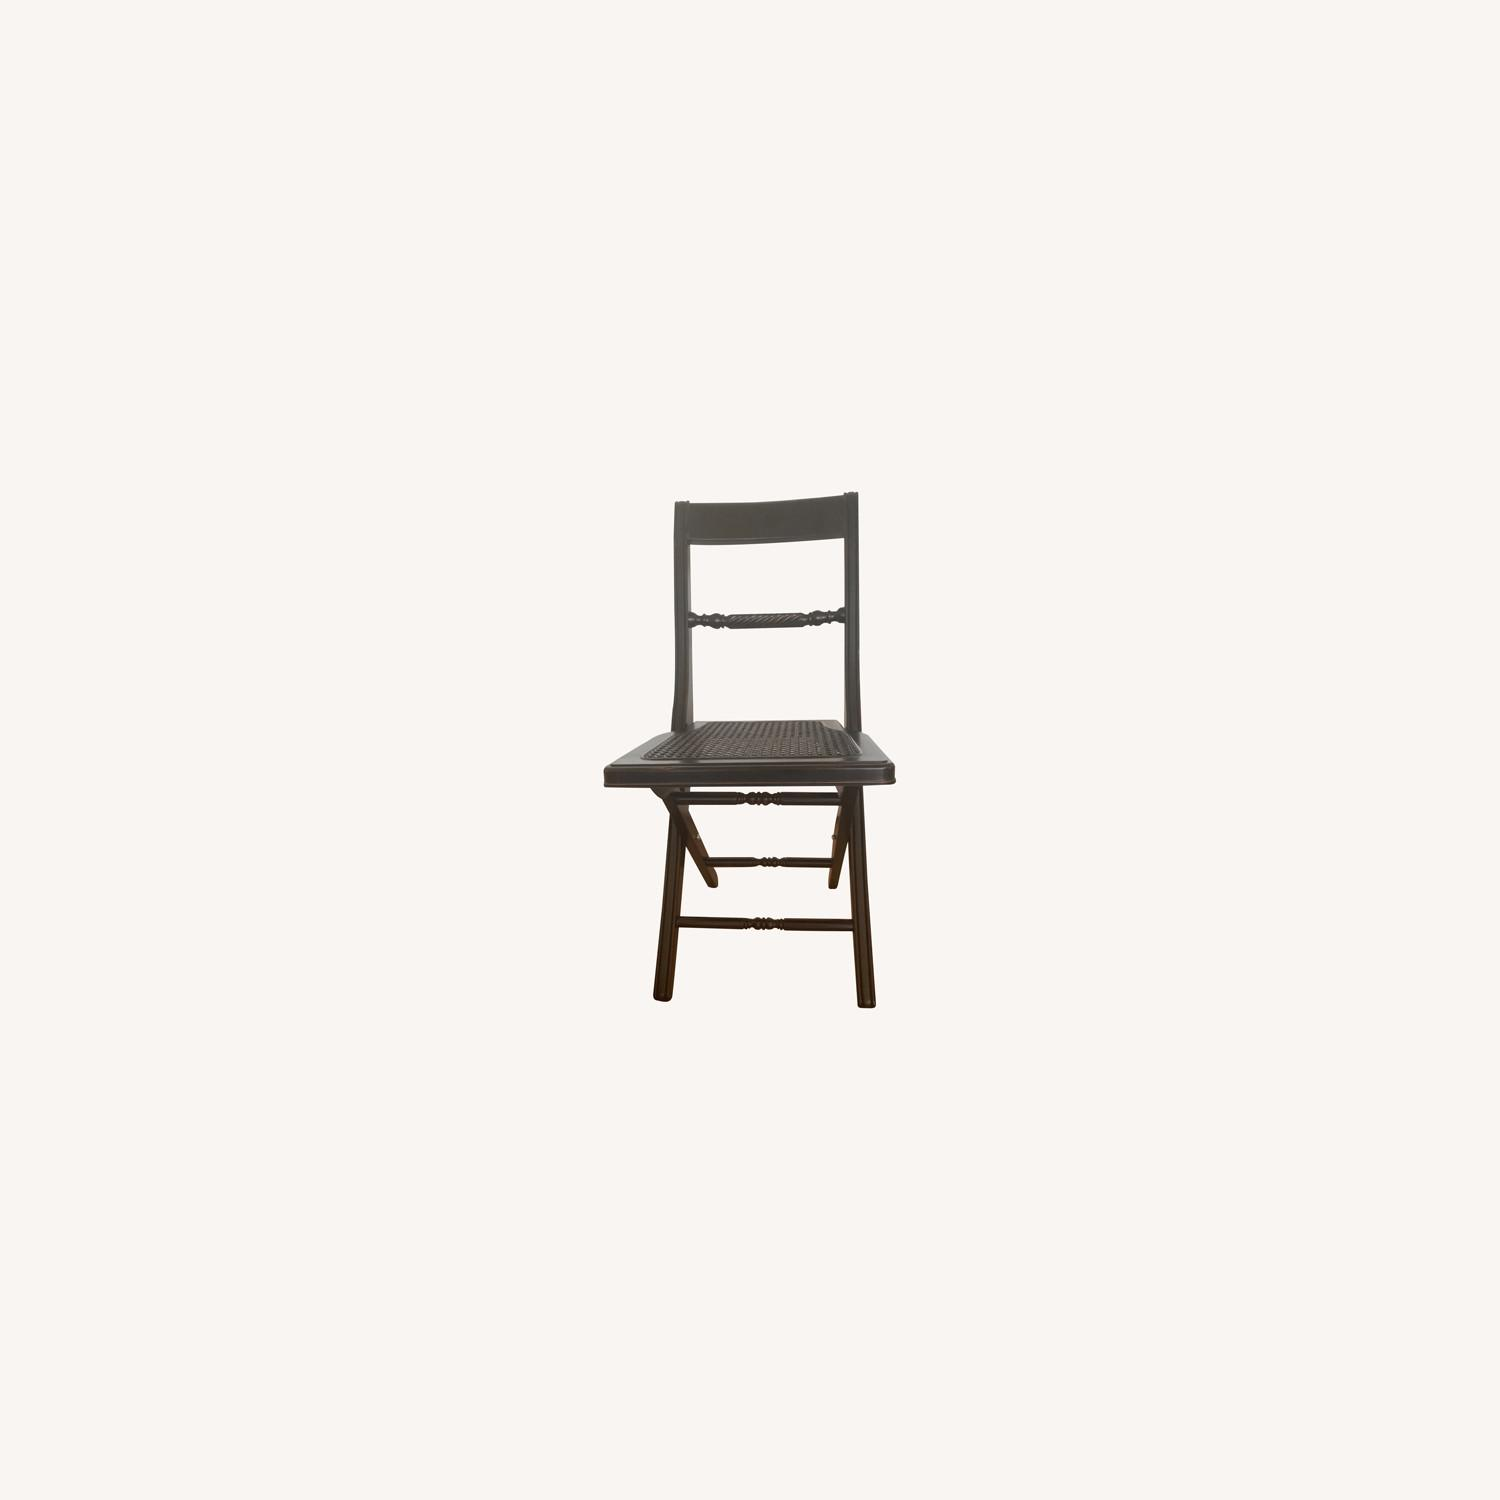 Folding Banquet Chairs with Wicker Seat - Set of 4 - image-0